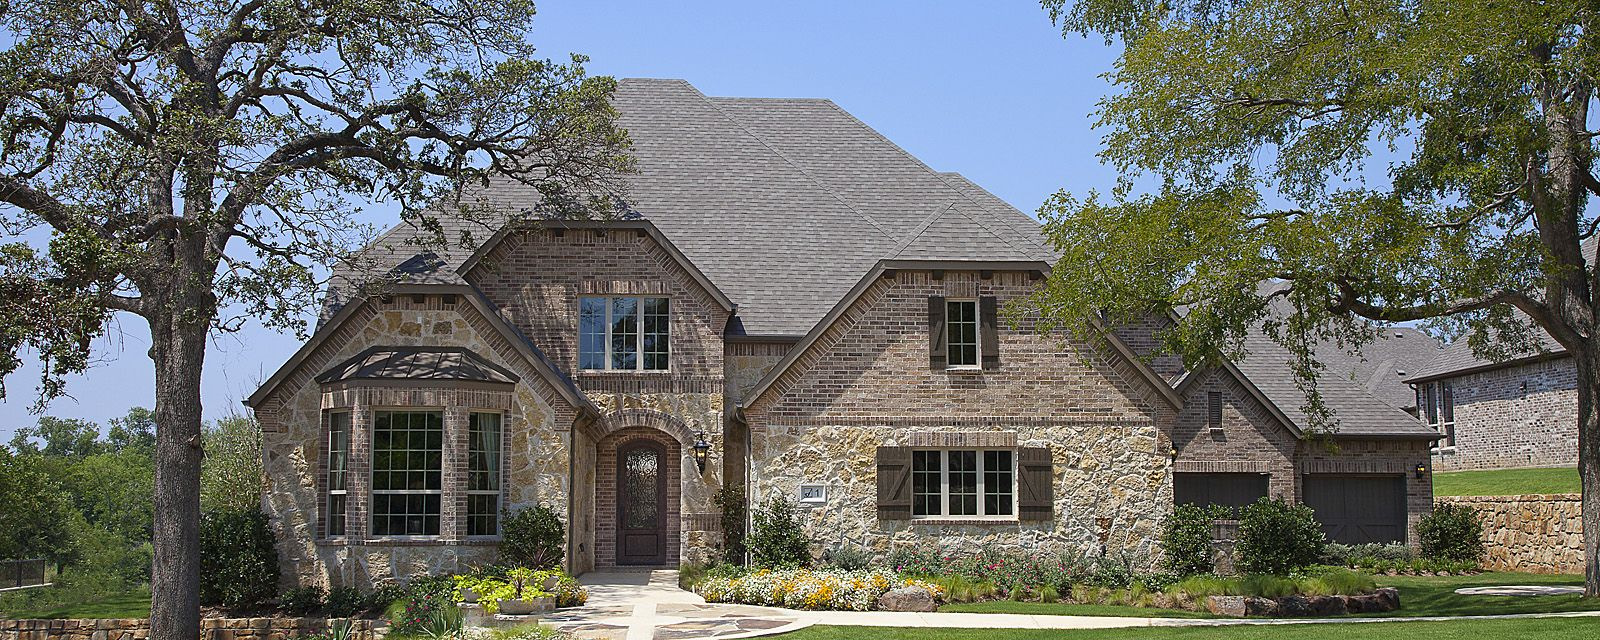 Single Family for Sale at Waters Edge - Prague 410 Hogan's Drive Trophy Club, Texas 76262 United States